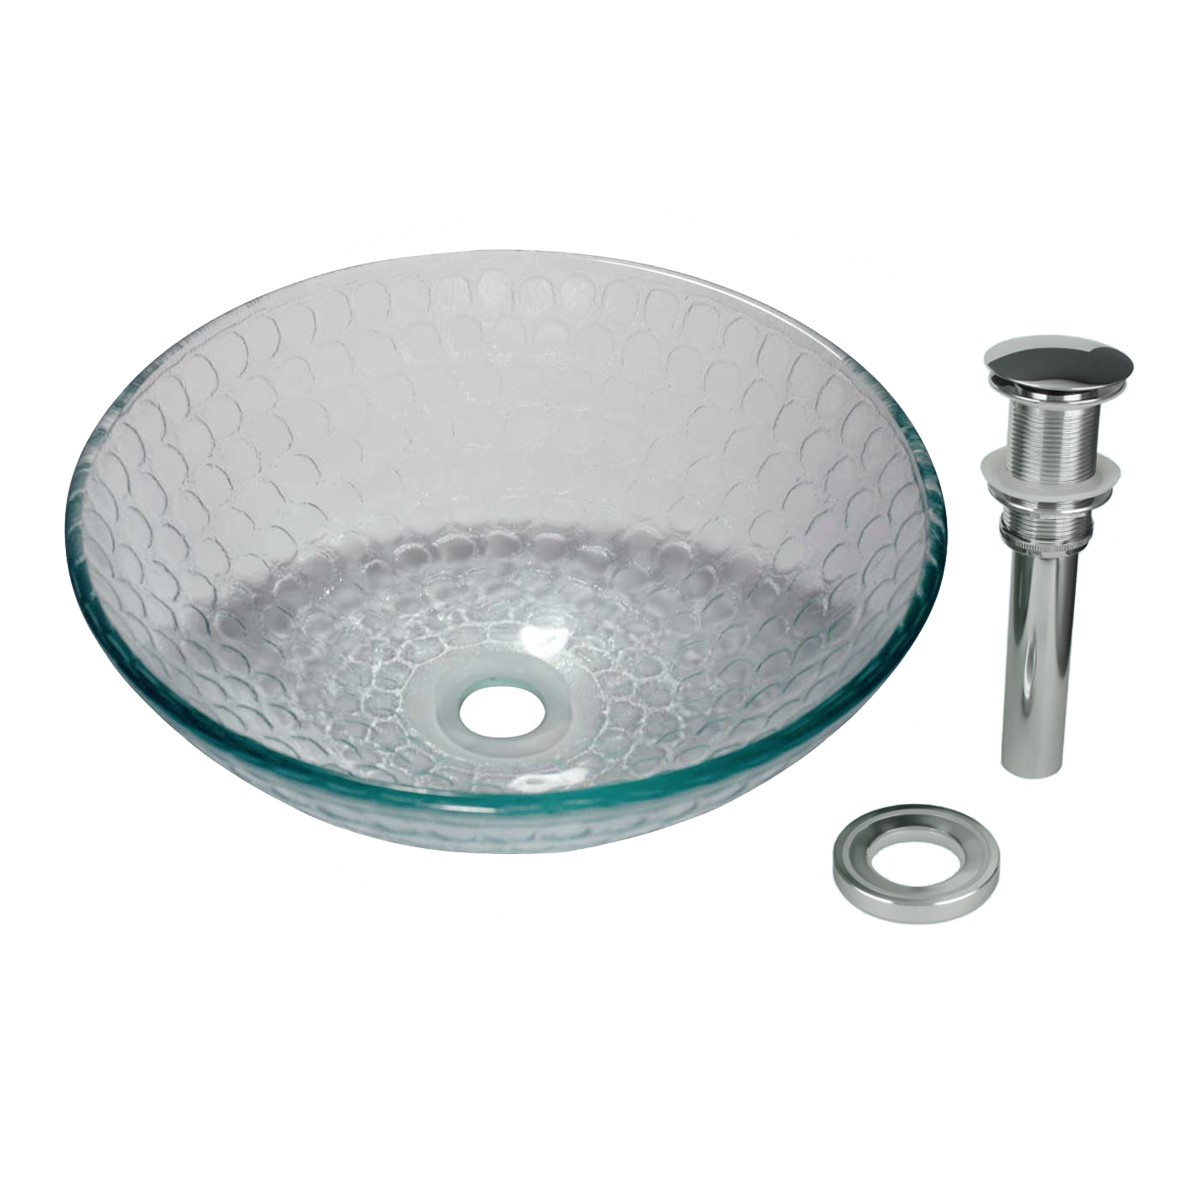 Tempered Glass Vessel Sink With Drain Frosted Green Bowl Sink